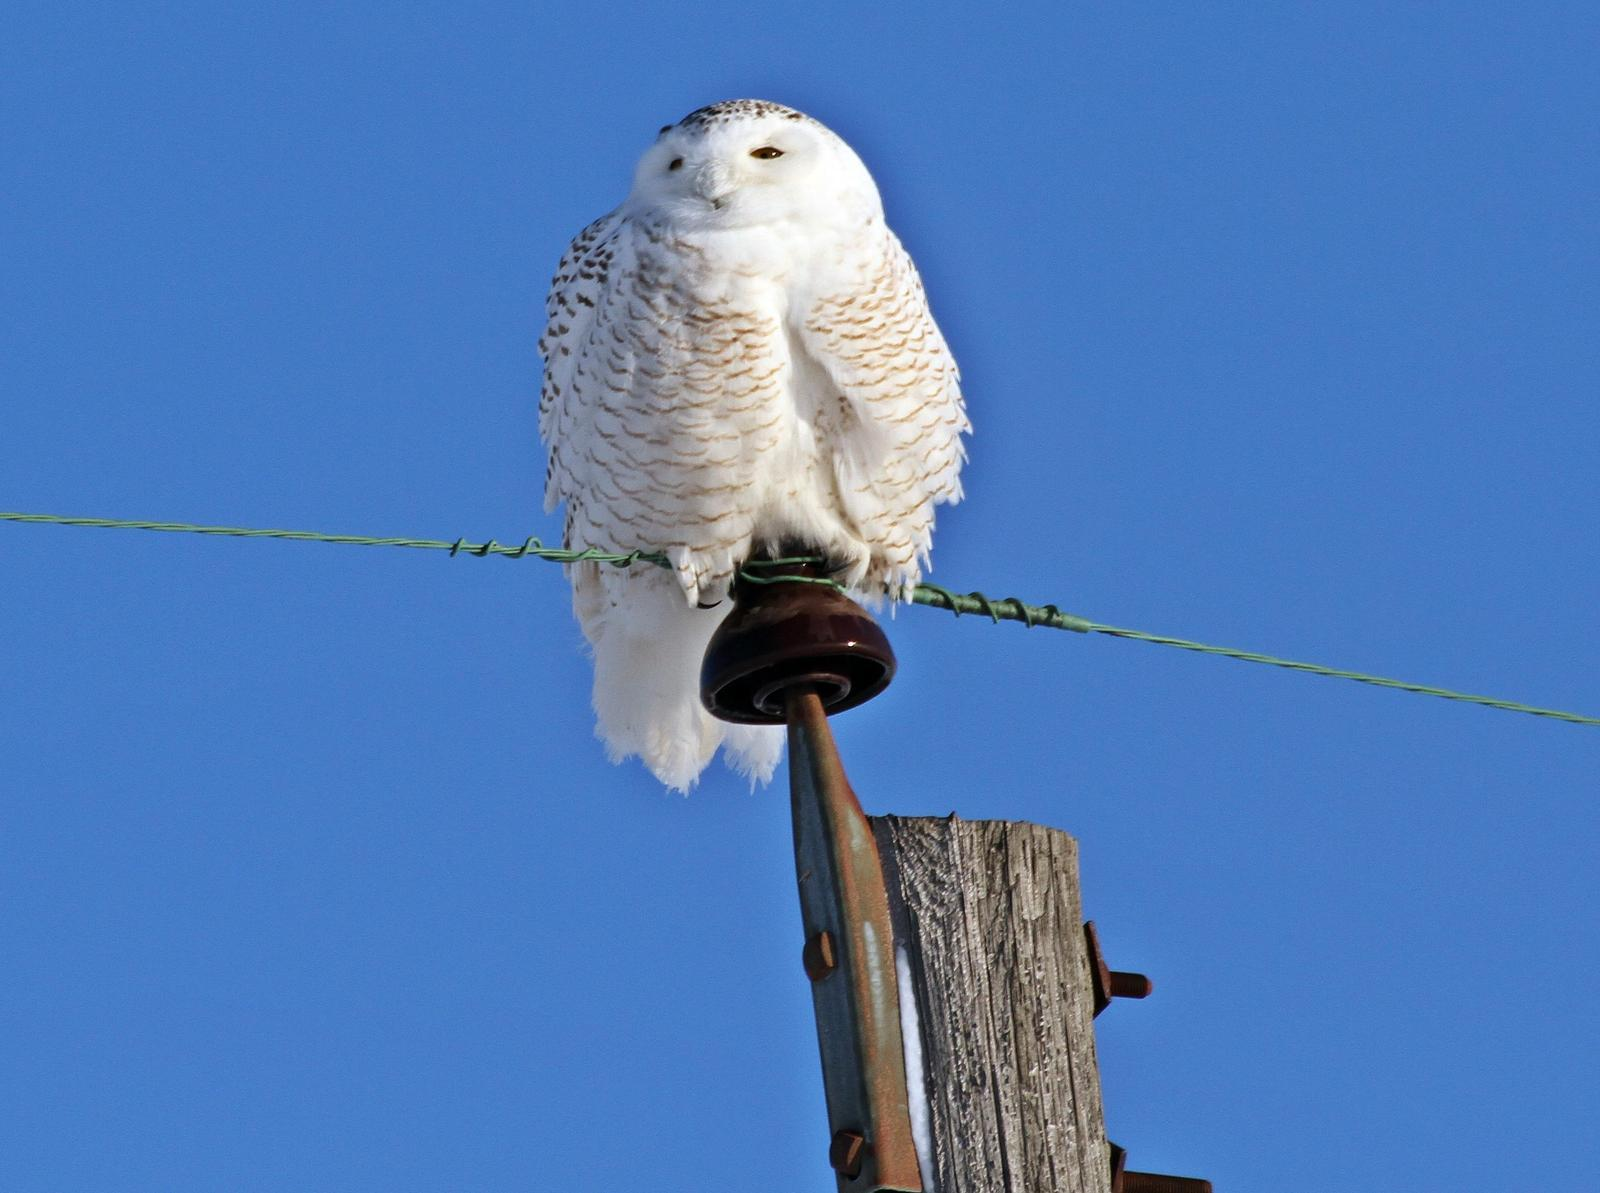 Snowy Owl Photo by Andrew Theus